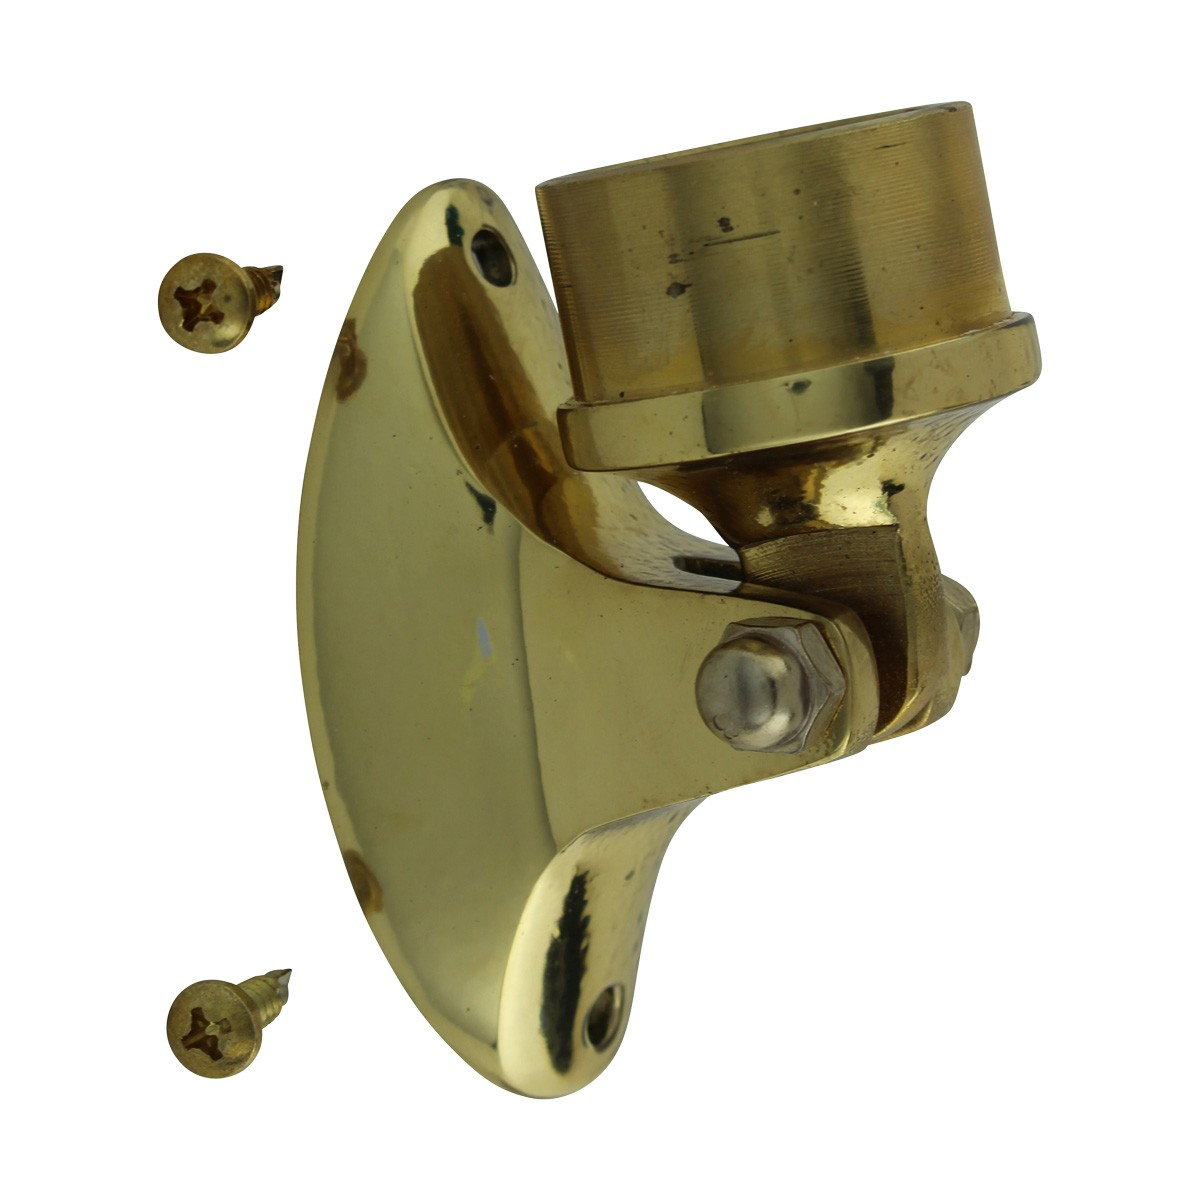 Polished Solid Brass Combination Bar Bracket 1.5 OD Rail Bar Mount Foot Rail Bar Foot Rail Tubing Brass Bar Bracket